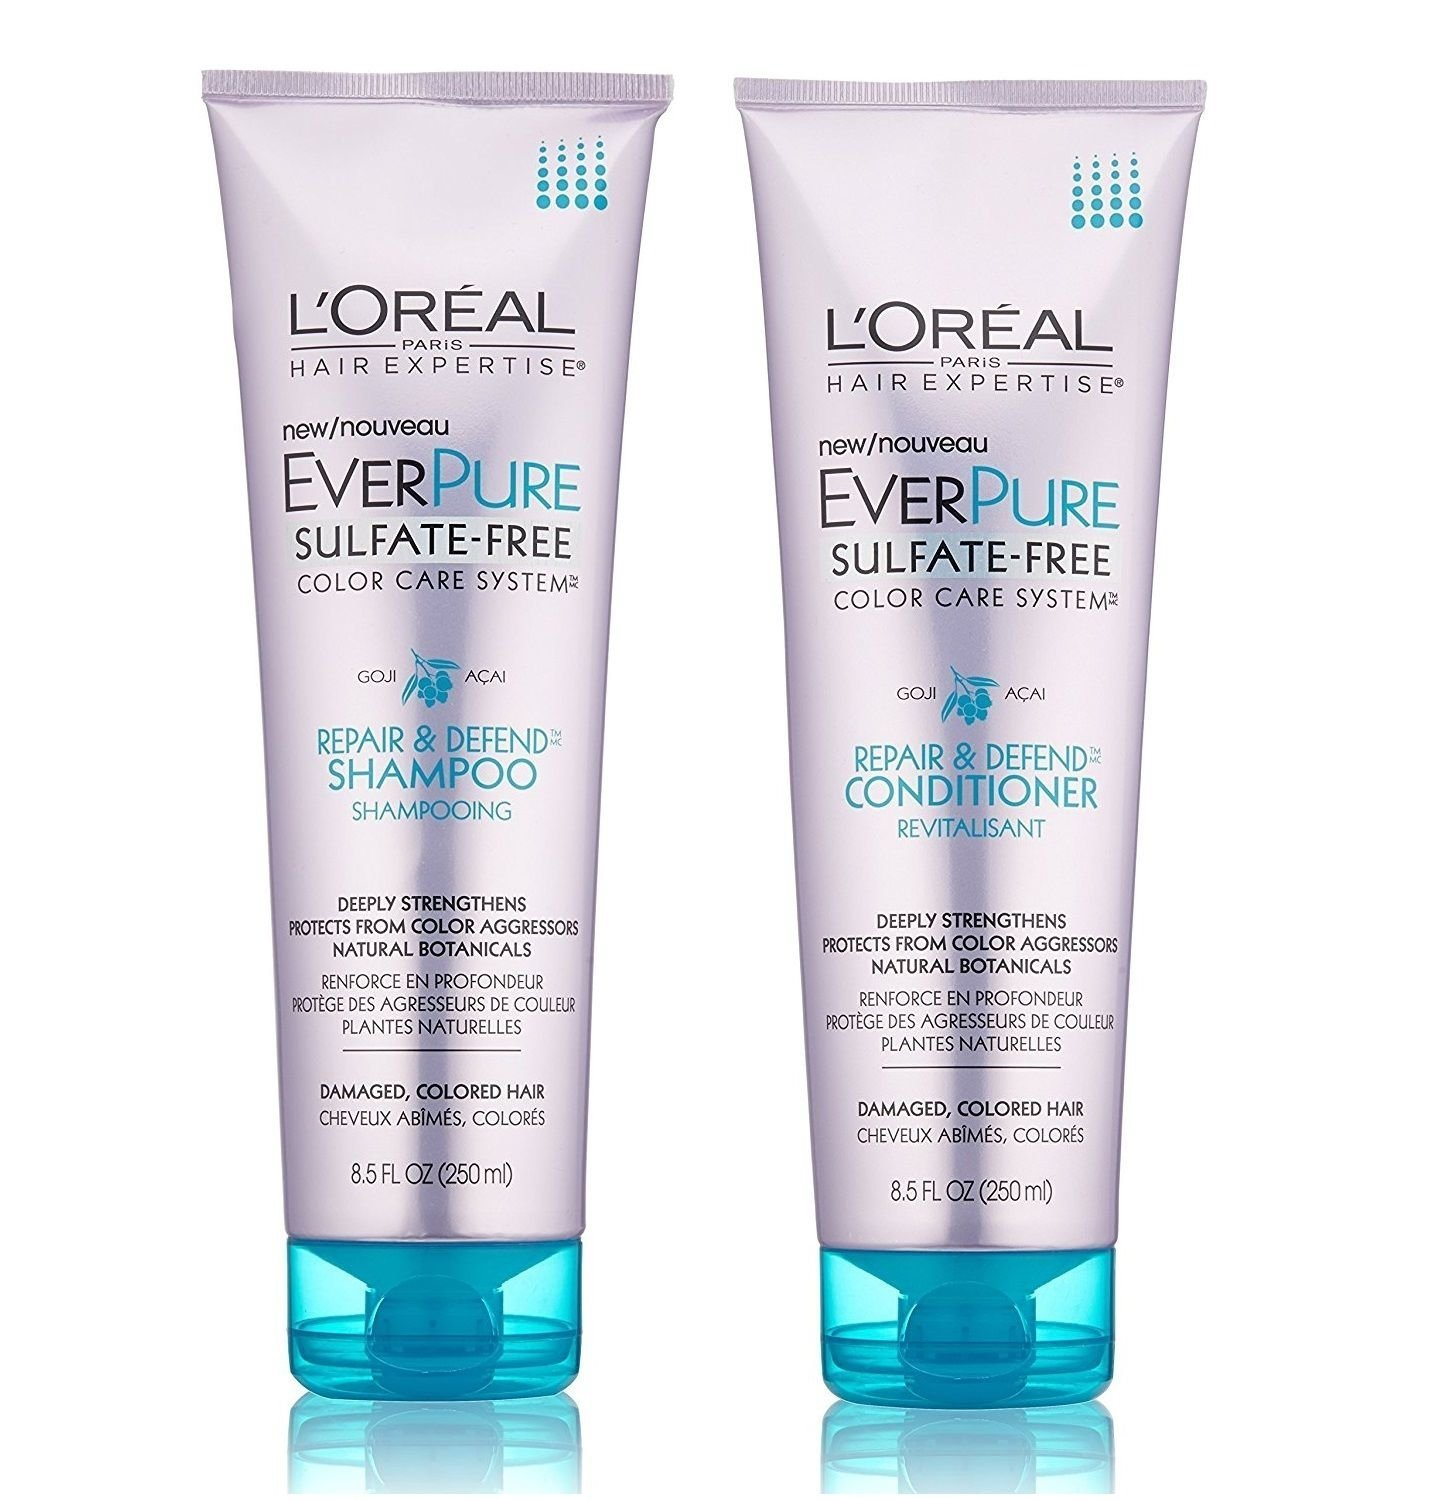 L'Oreal Paris Hair Care Expertise EverPure Repair and Defend Shampoo and Conditioner, 8.5 Fluid Ounce Each